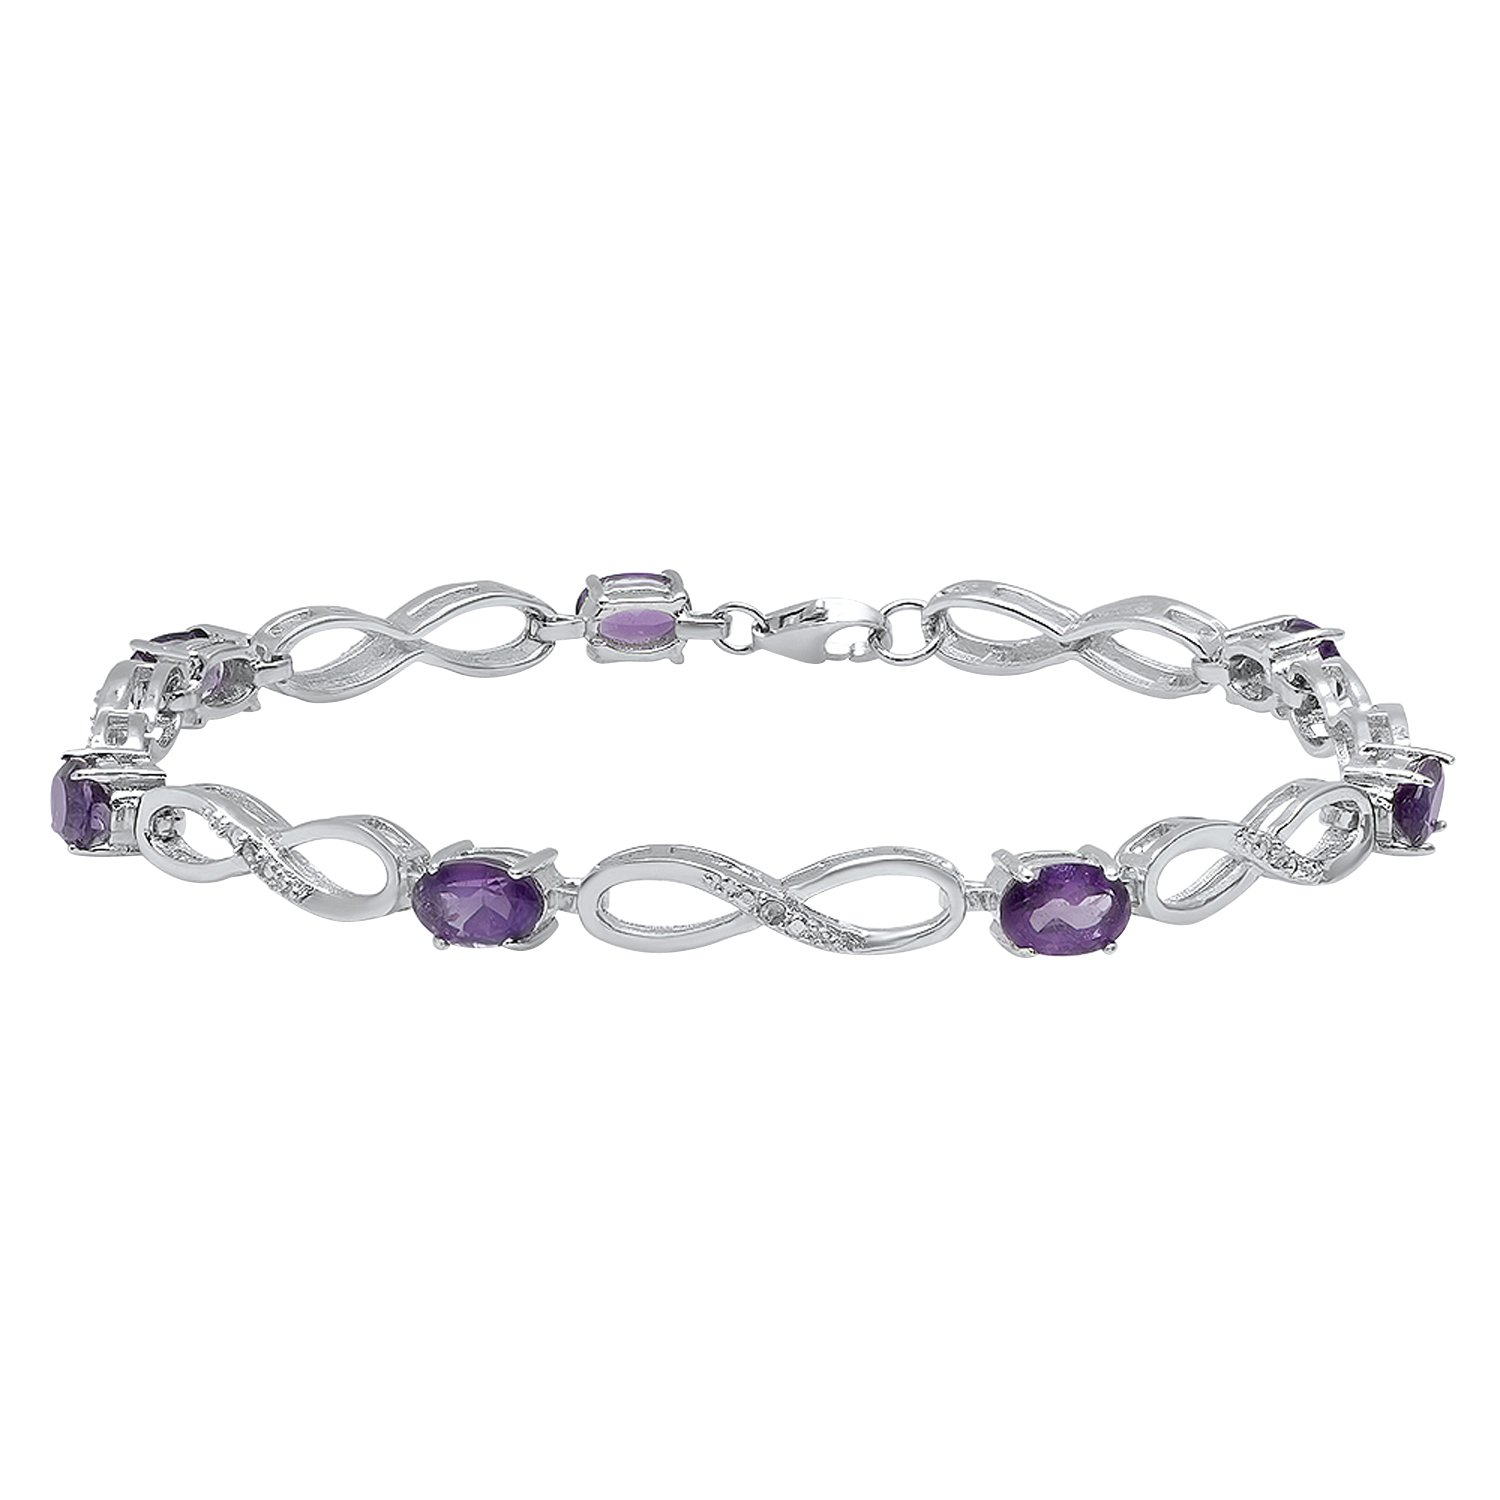 Dazzlingrock Collection 6X4 MM Each Oval Amethyst & Diamond Accents Ladies Infinity Tennis Bracelet, Sterling Silver by Dazzlingrock Collection